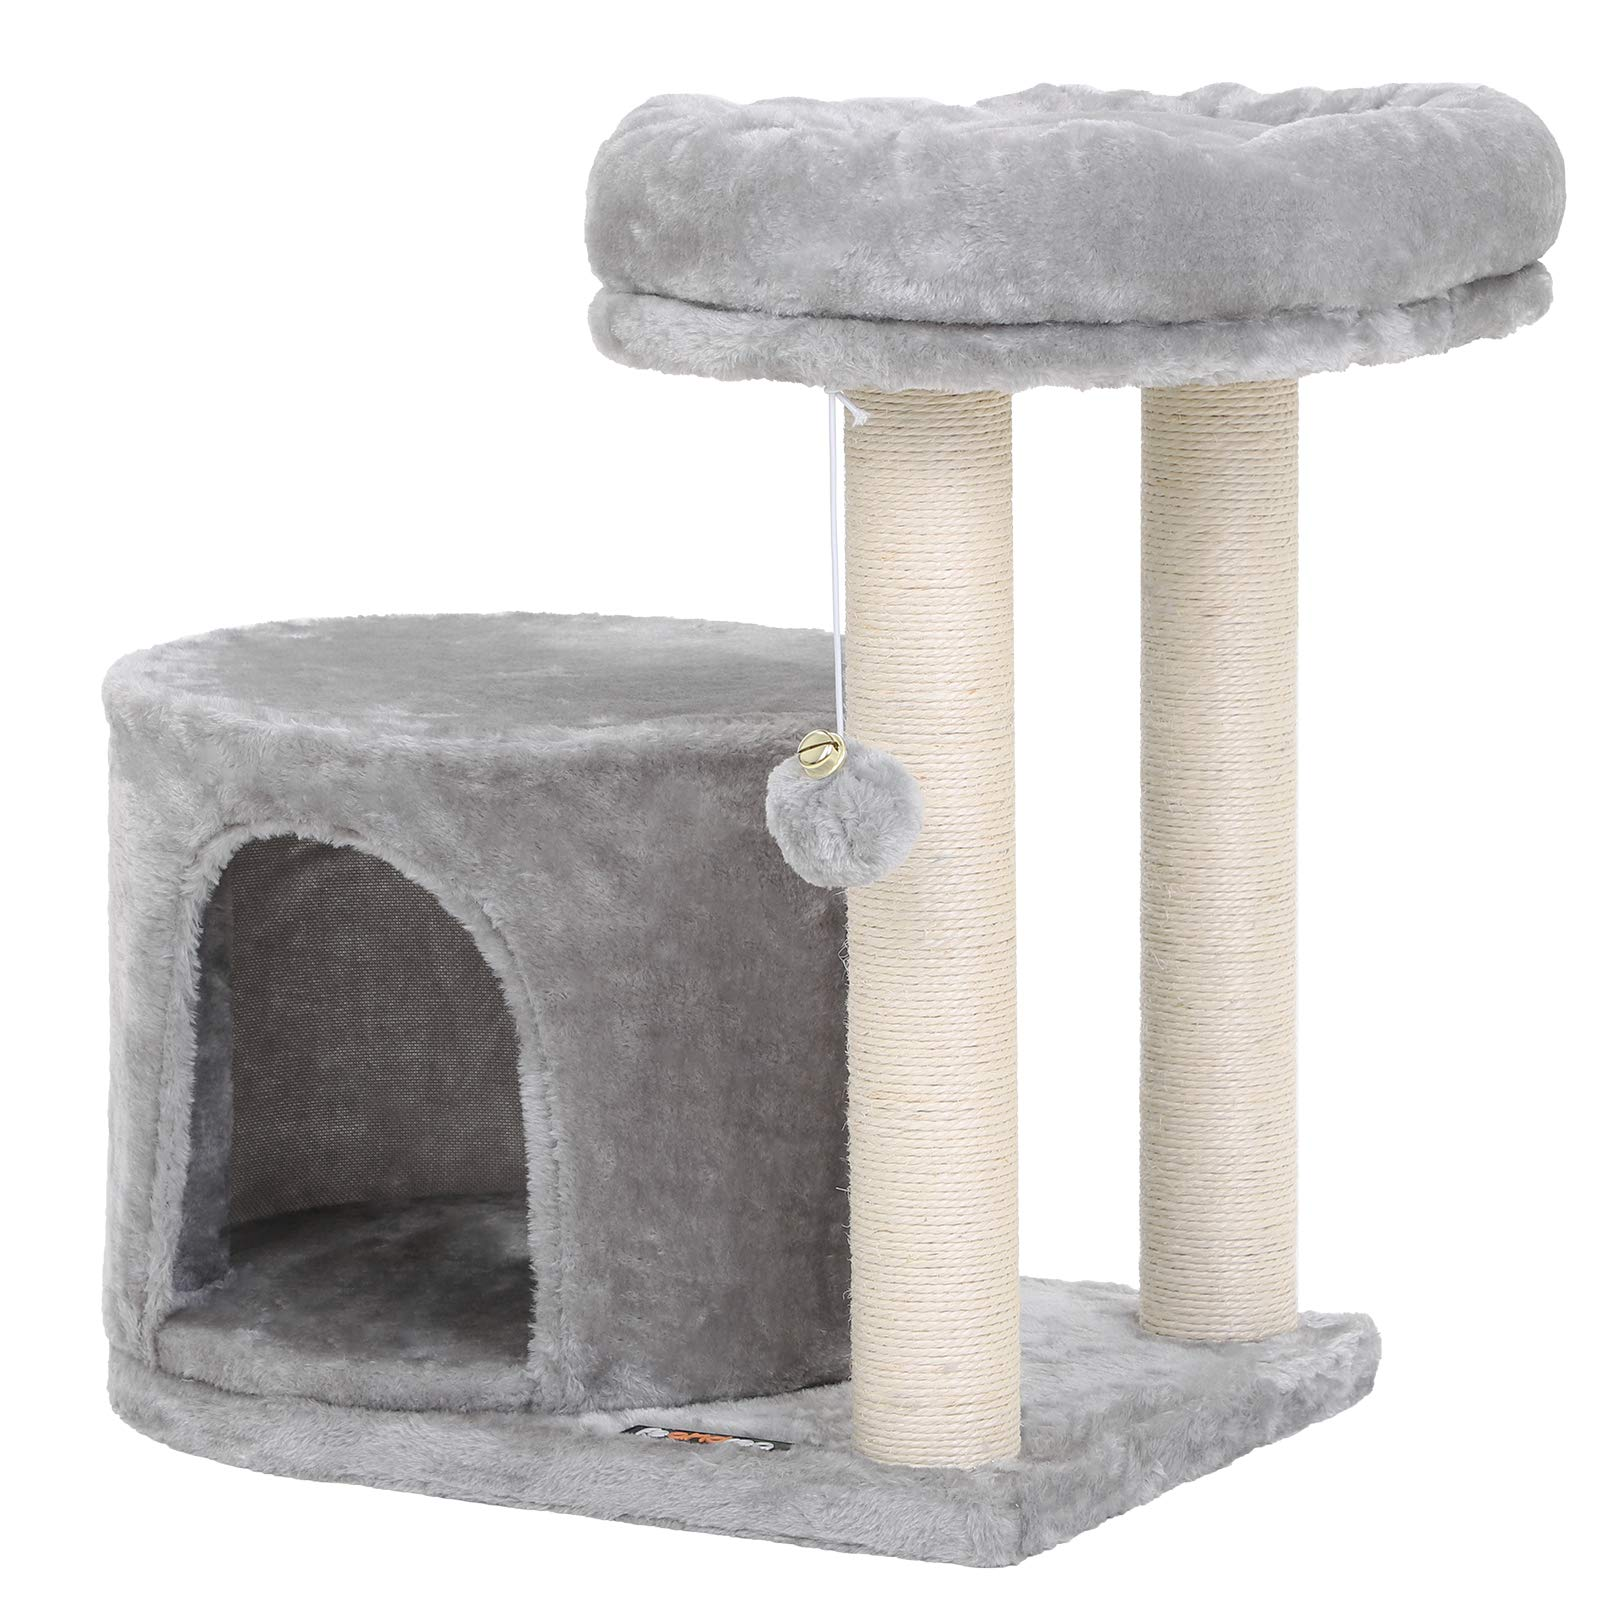 FEANDREA Cat Tree with Sisal-Covered Scratching Posts UPCT50W by FEANDREA